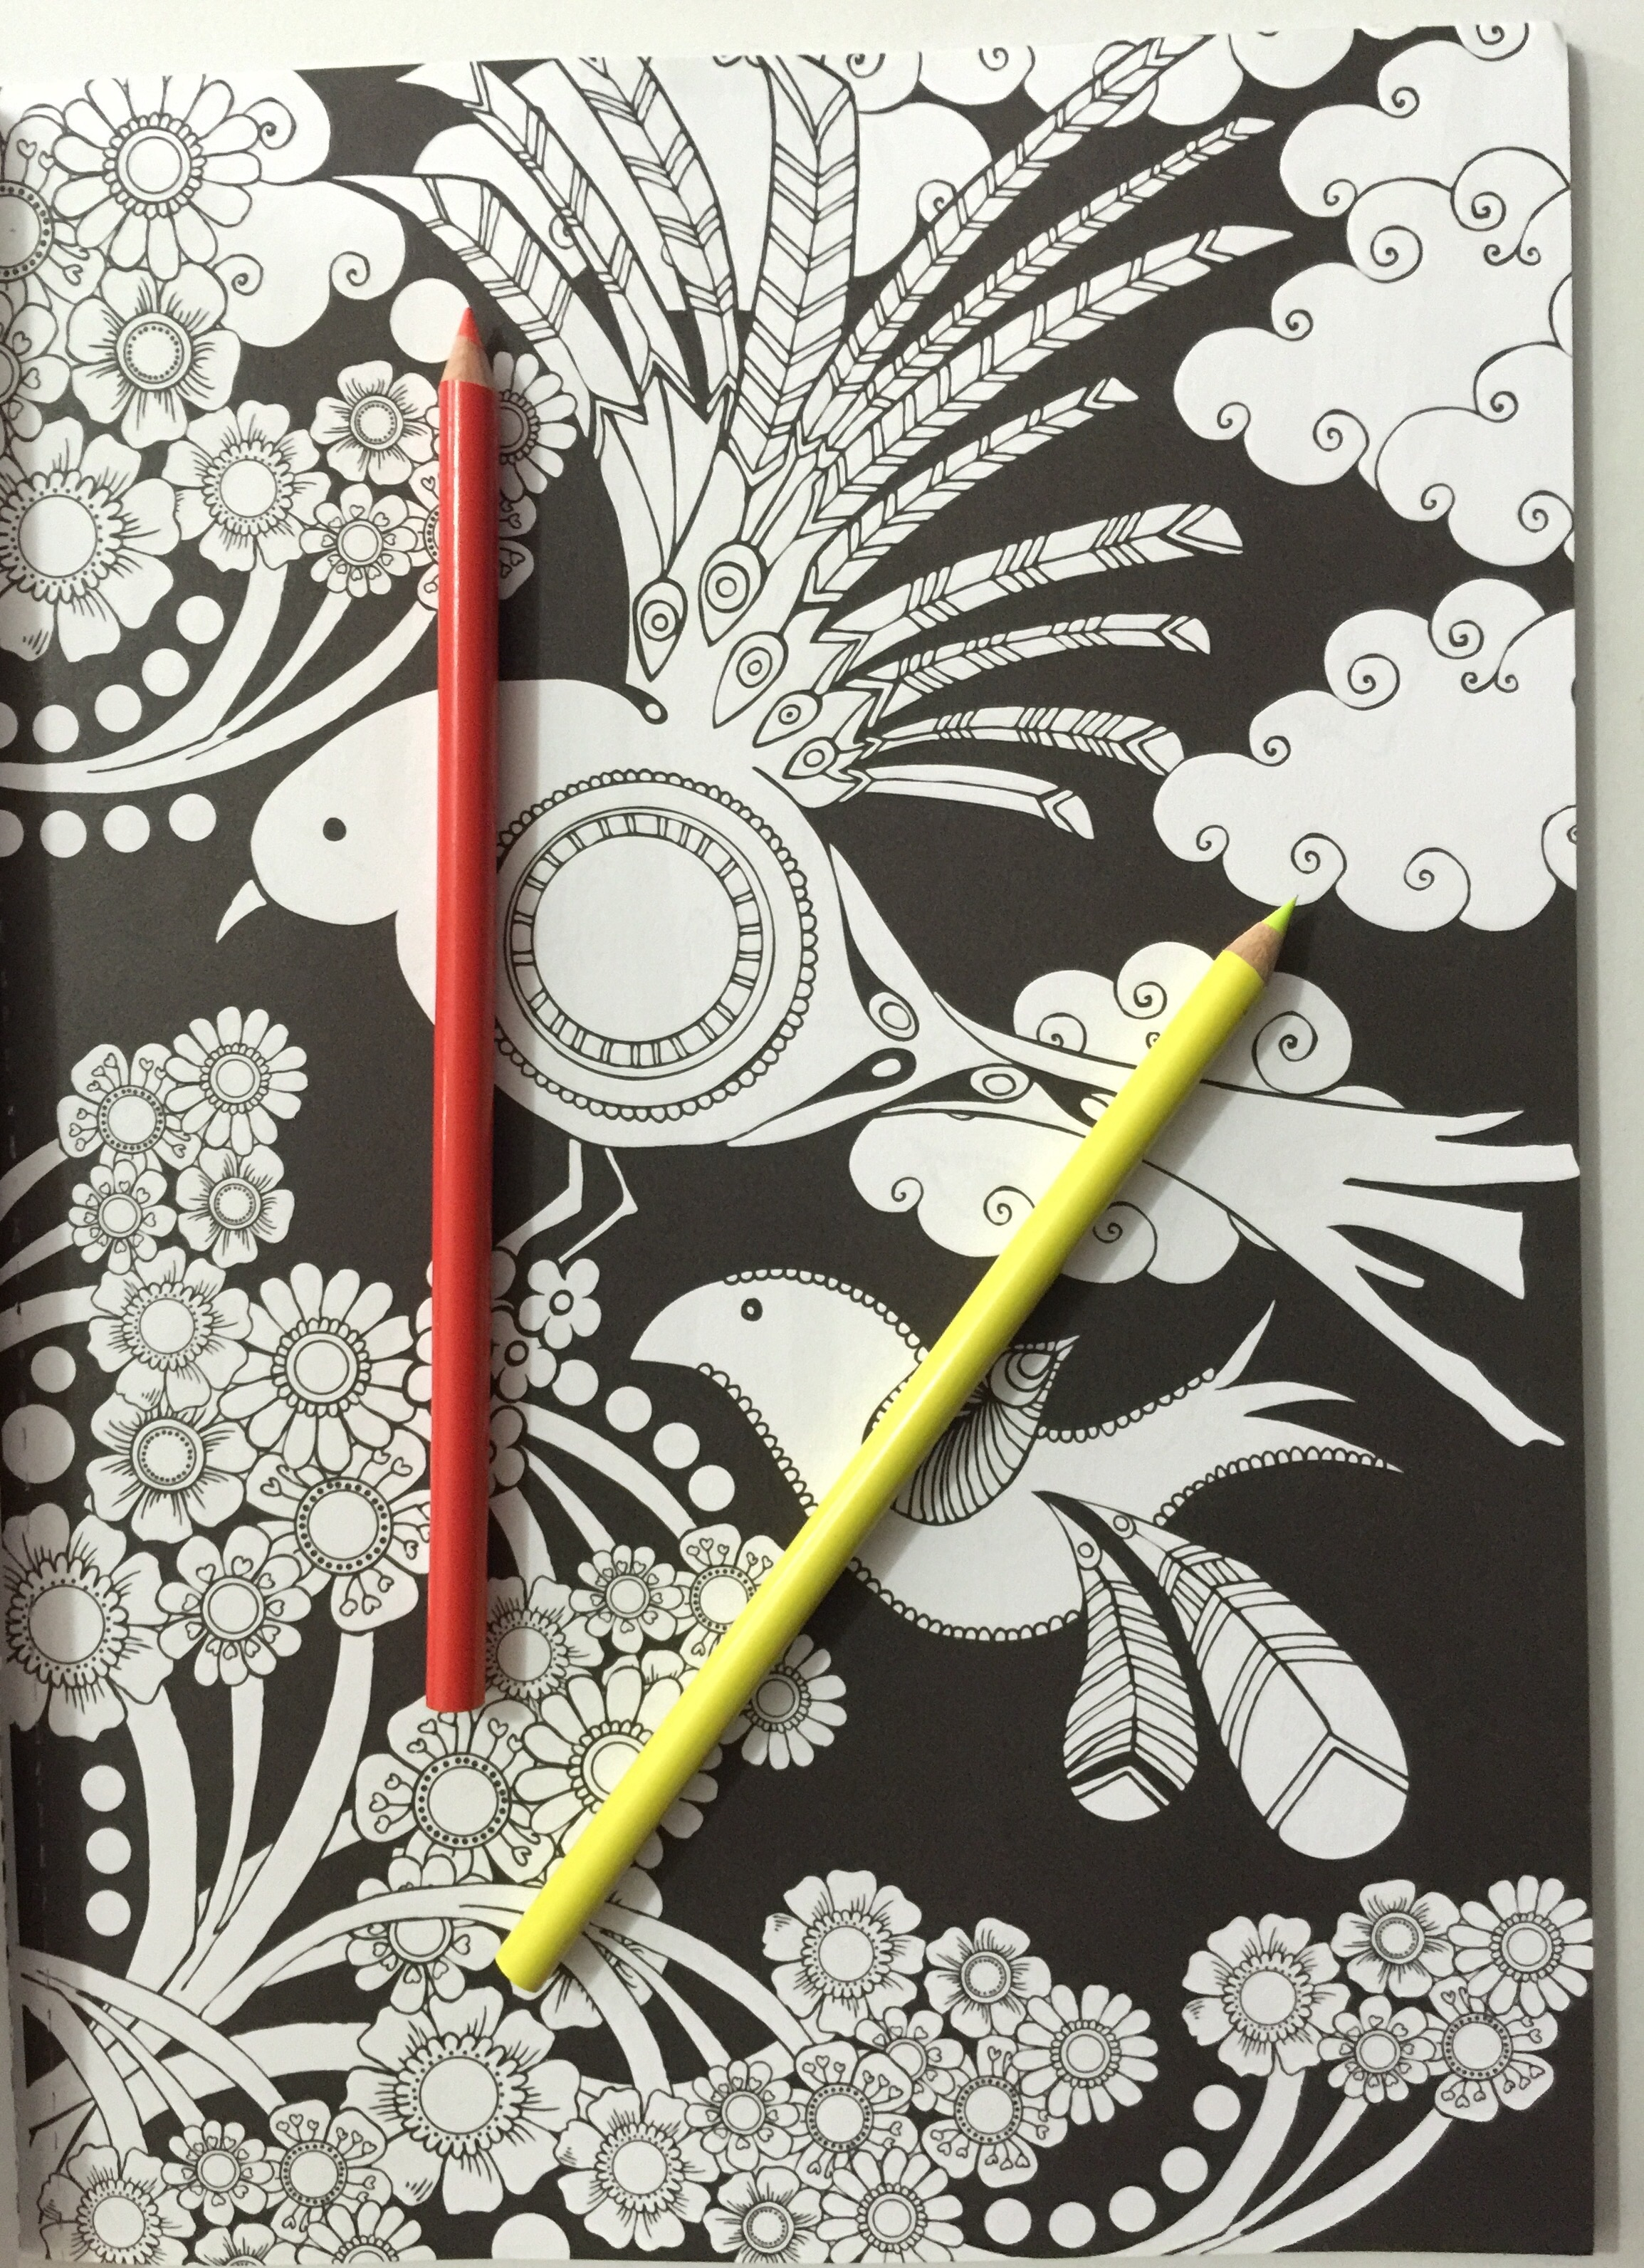 colouring coloring adult reviews  midnight garden creative haven books review adult coloring pencils stress relief mindfulness black backgrounds